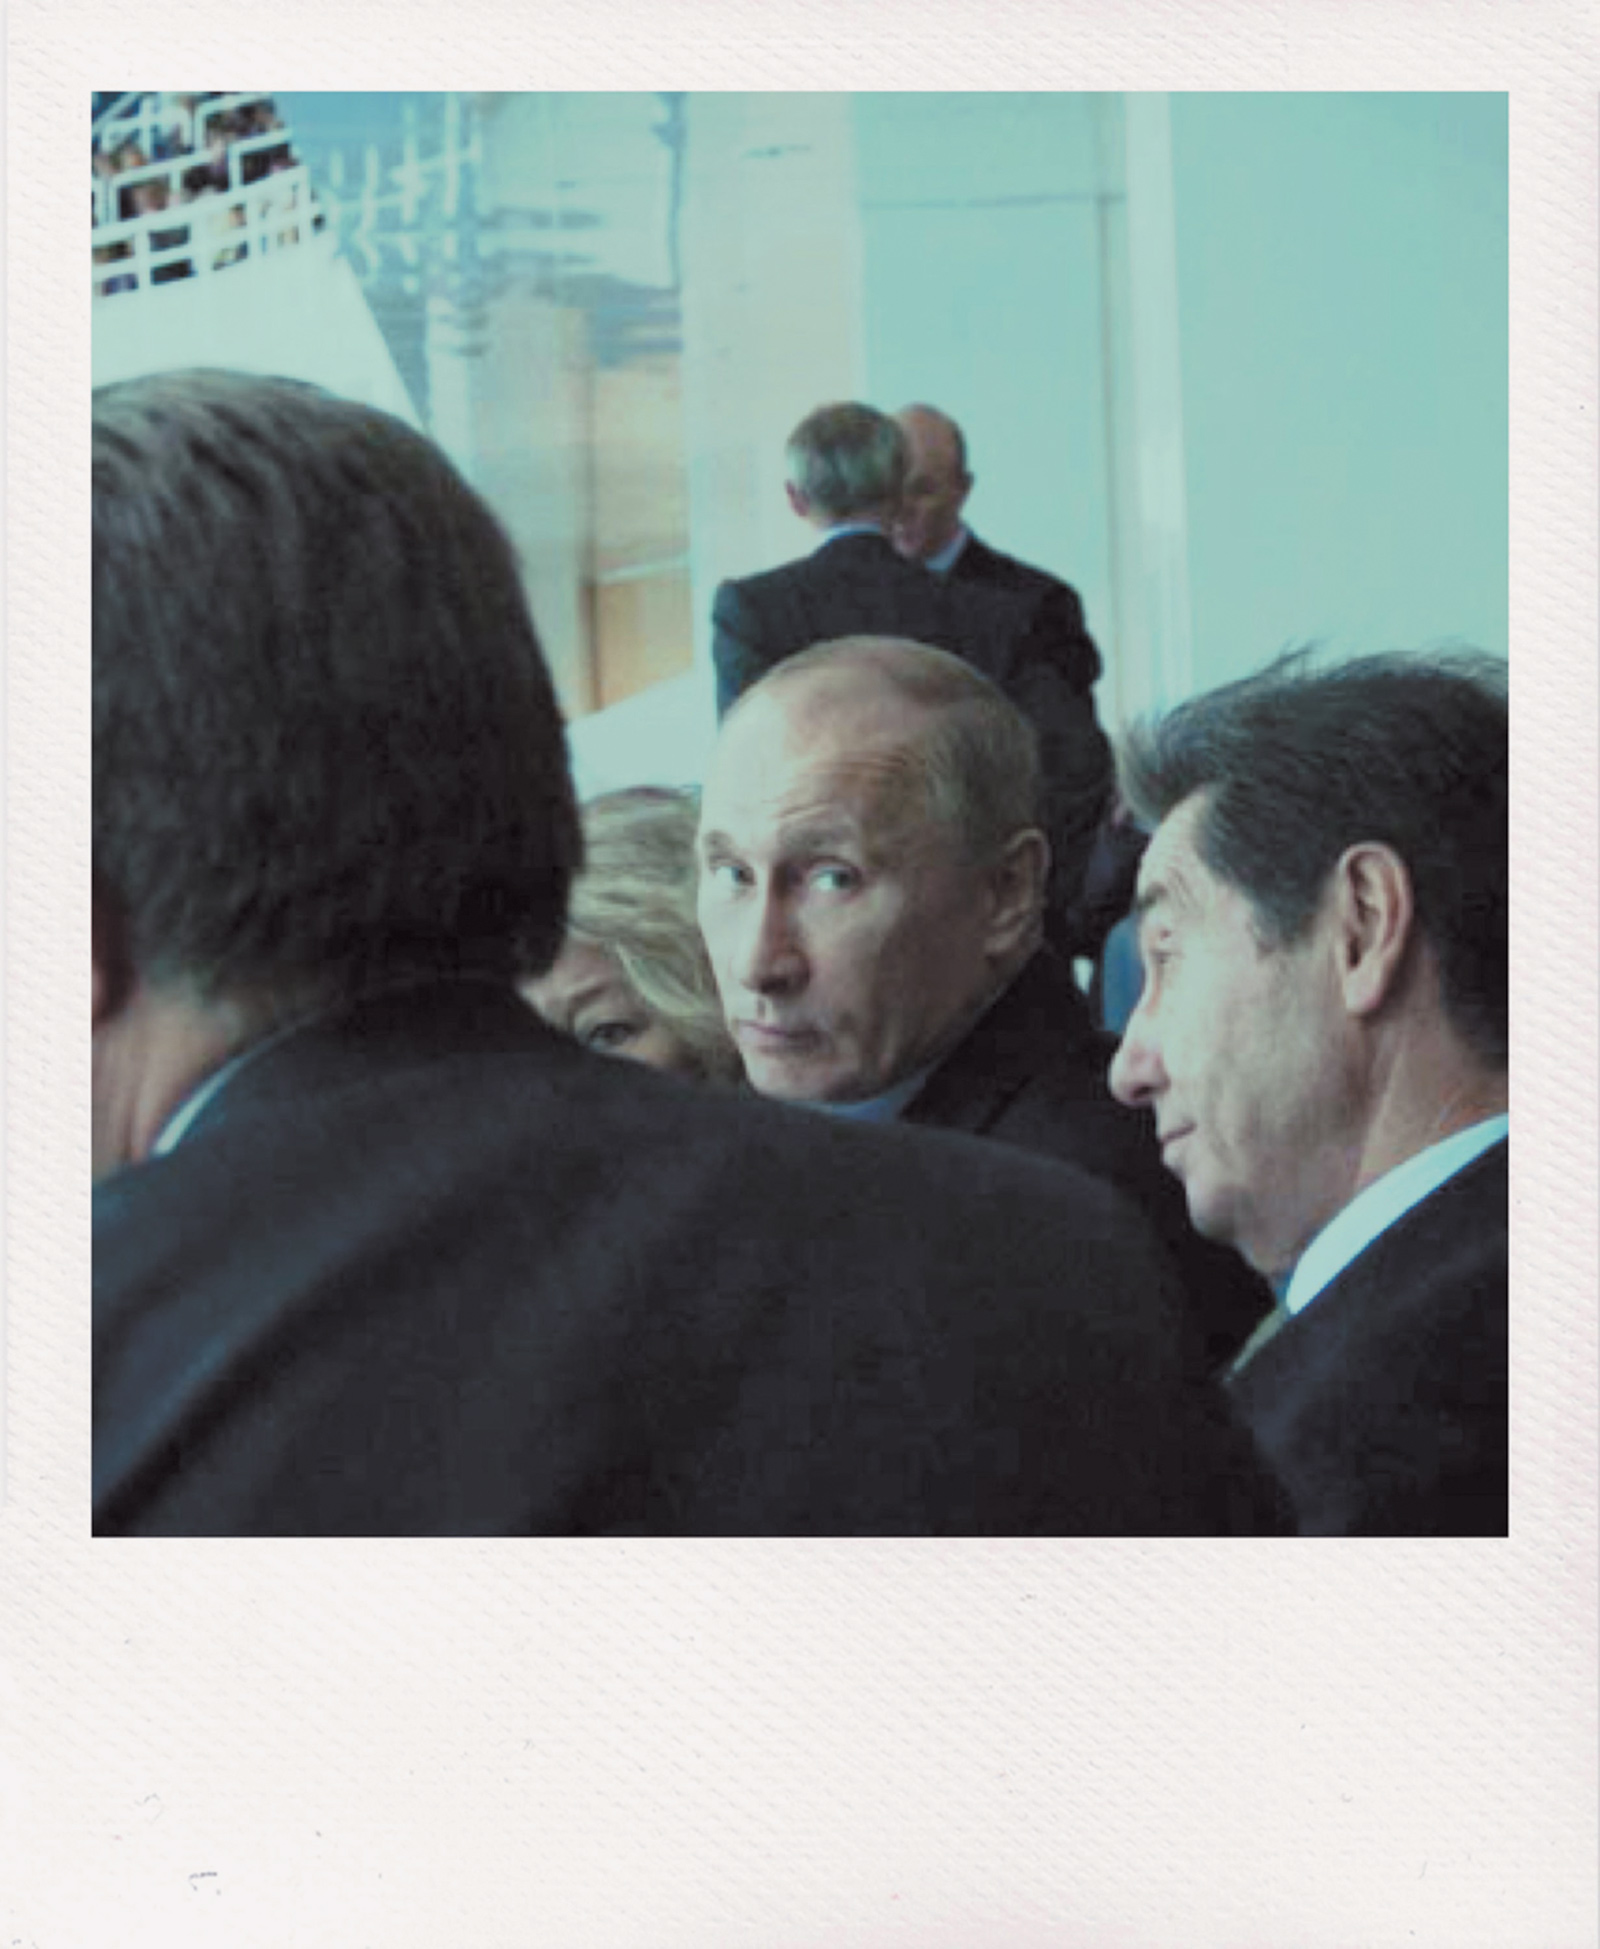 Vladimir Putin at an ice-skating event in Sochi, Russia, before the Olympics, April 2013